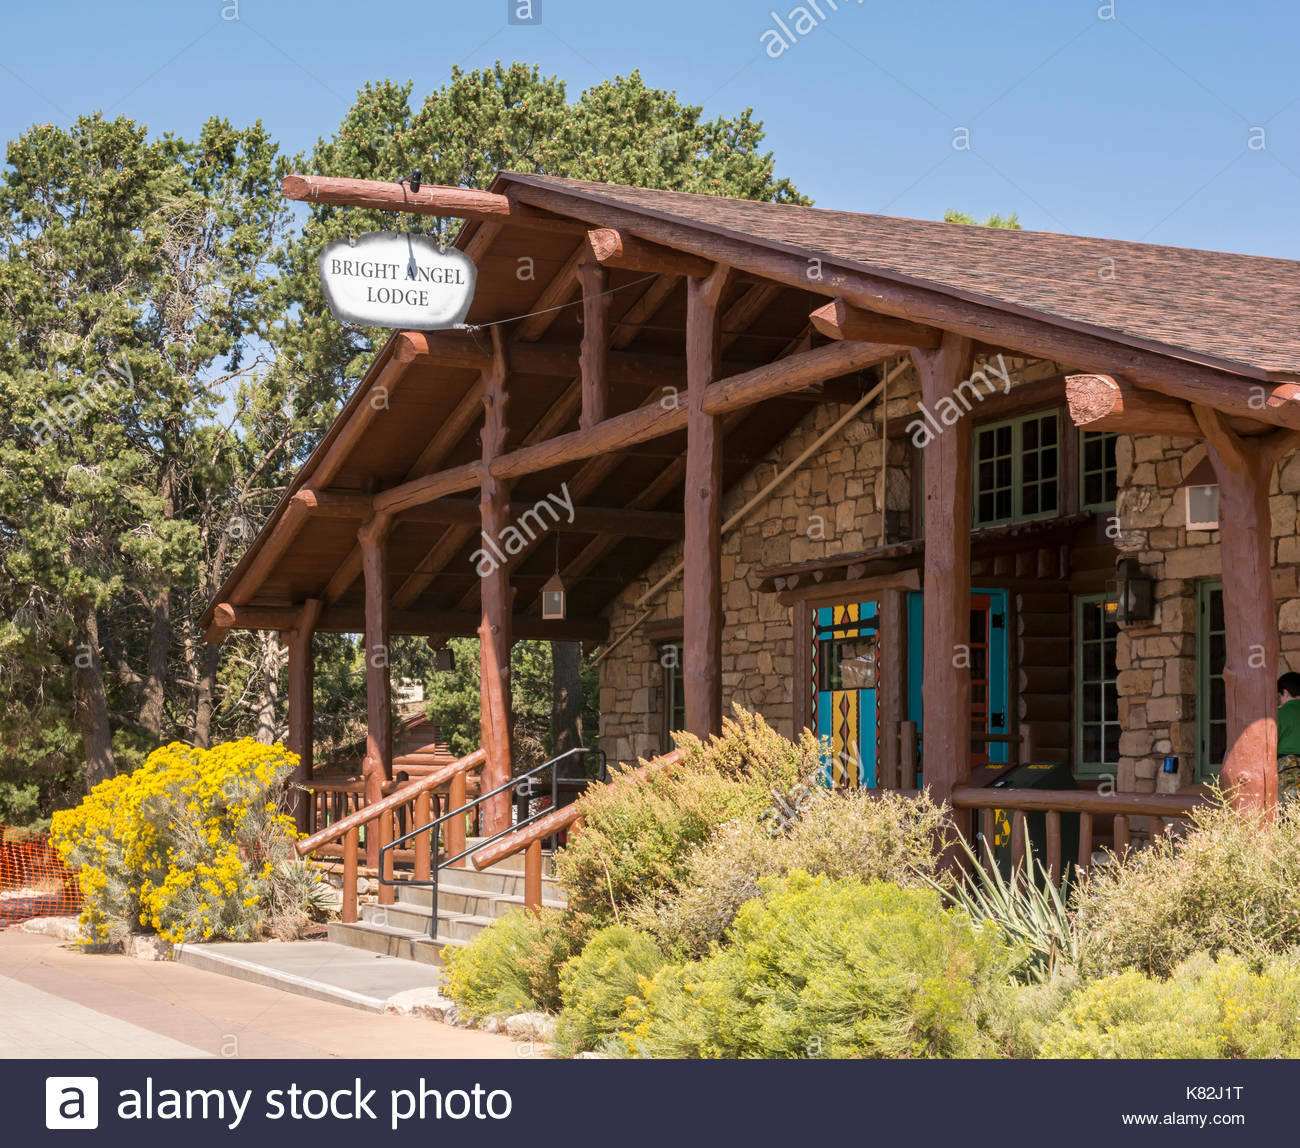 Bright Angel Lodge, Historic Lodge And Cabins At Grand Canyon National Park  South Rim, Arizona, USA